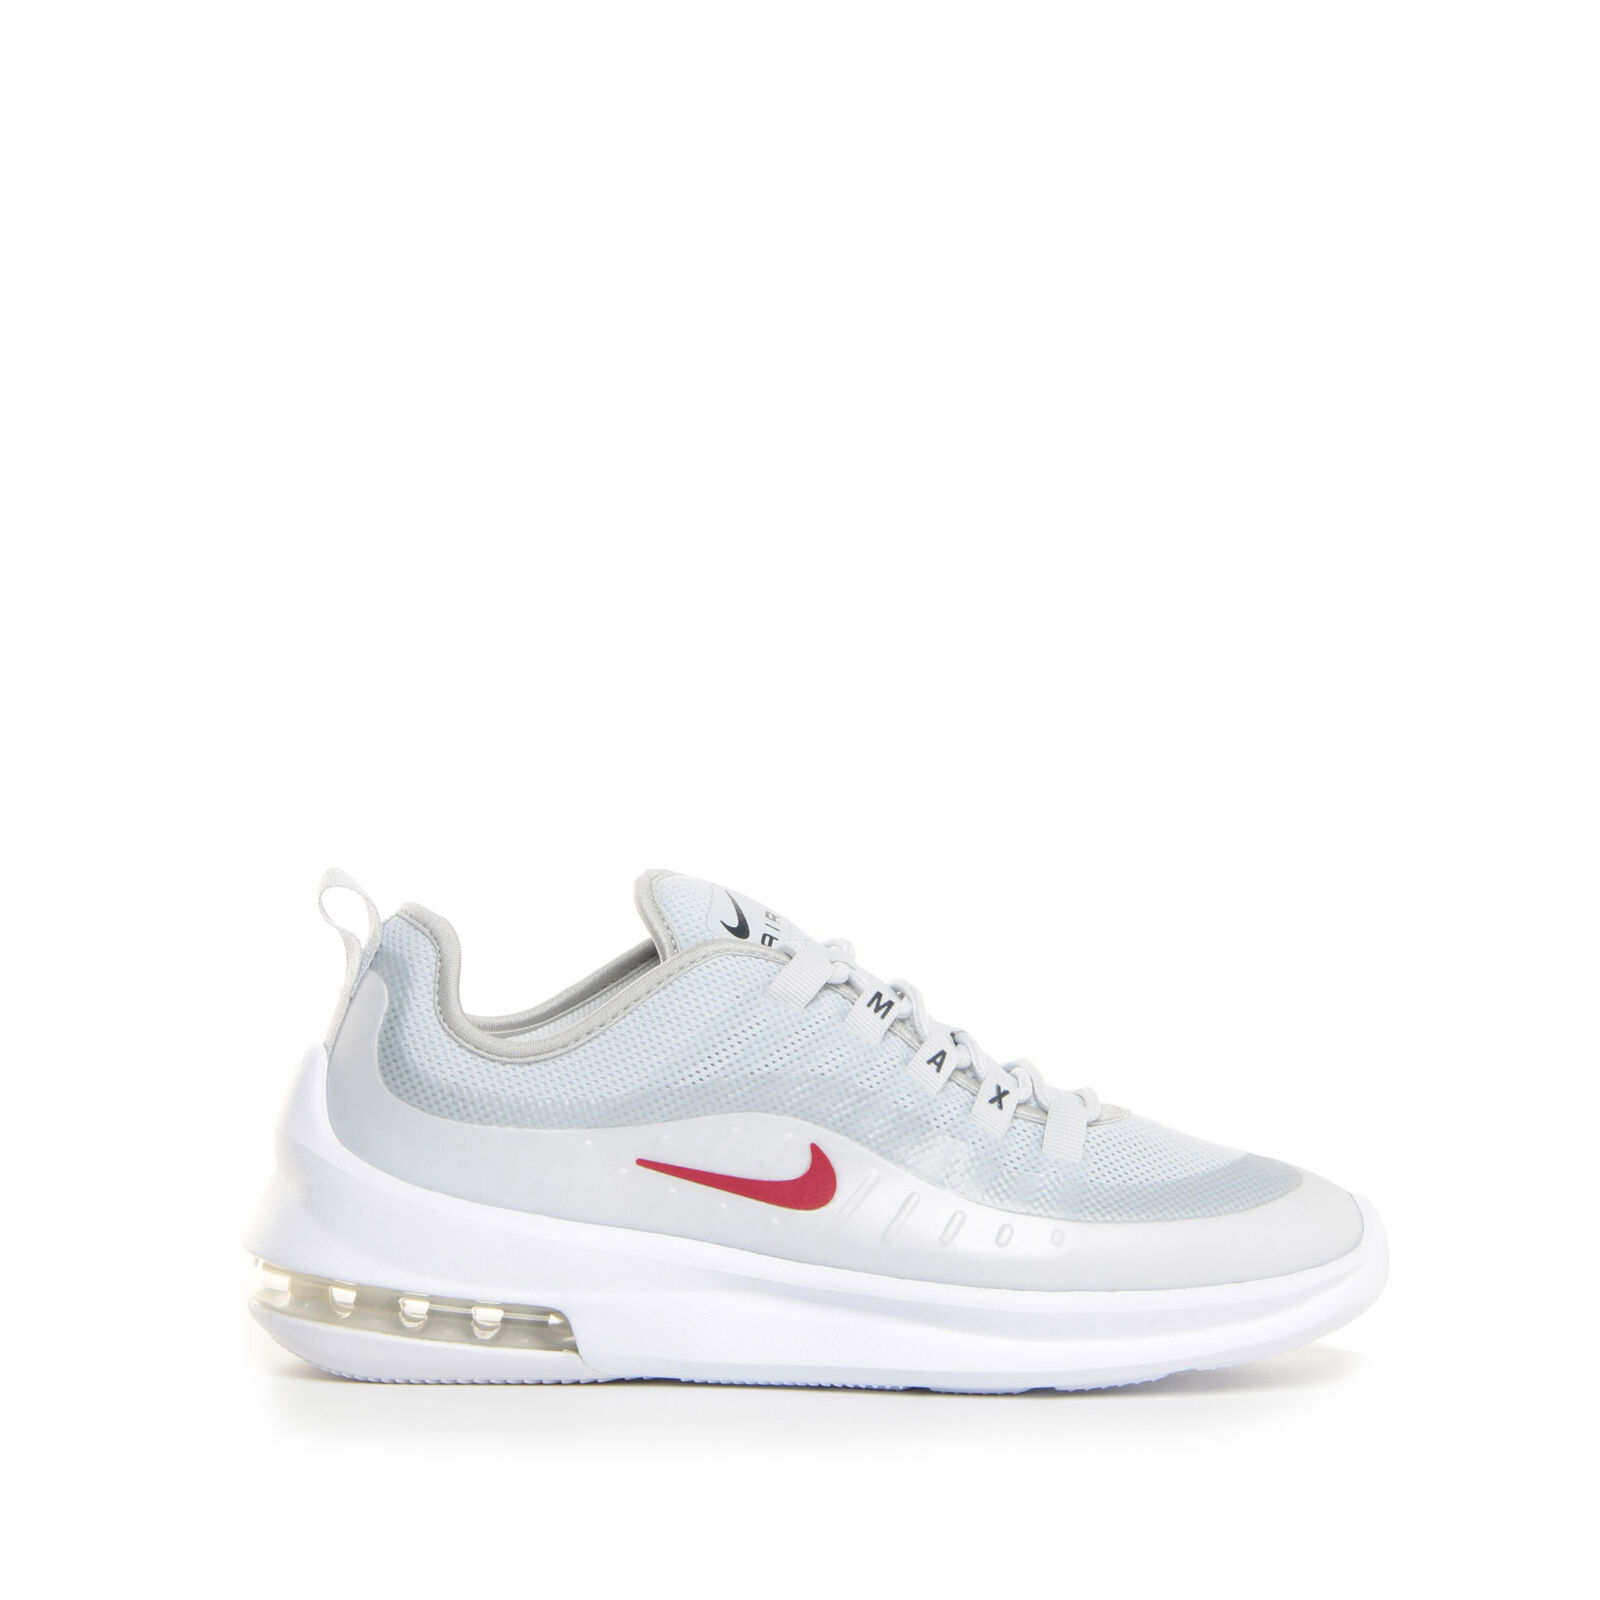 NIKE AIR MAX AXIS ZAPATOS FREE TIME UNISEX AA2168 003